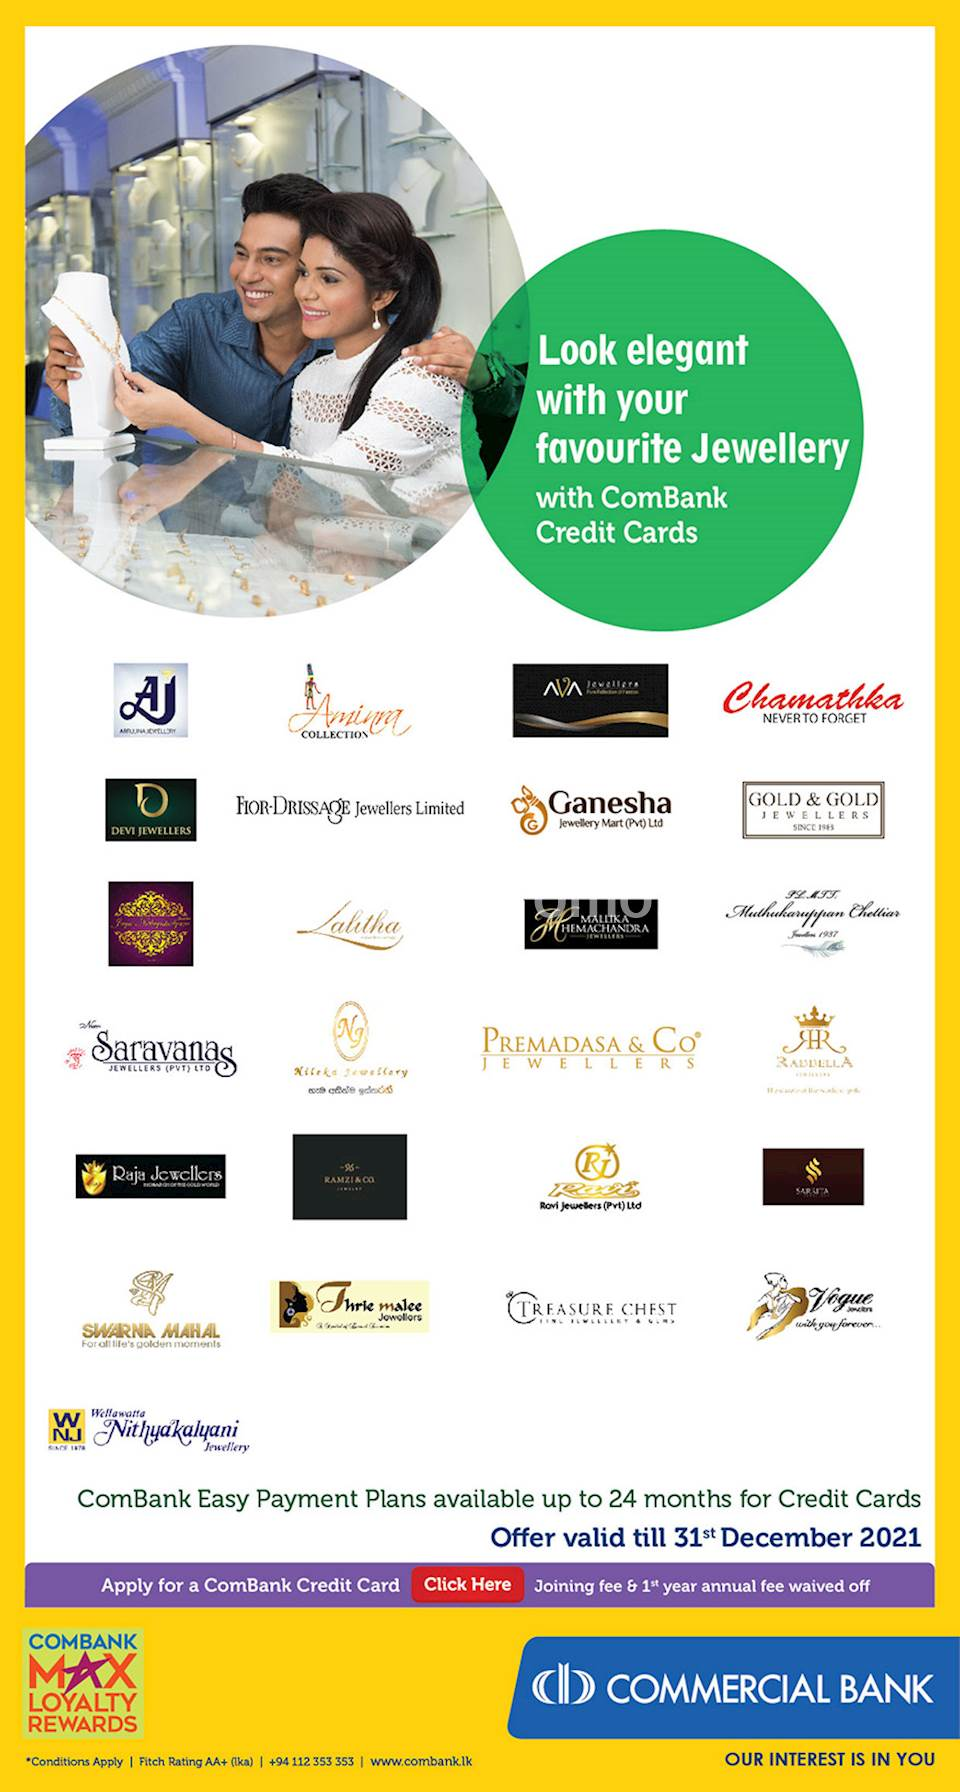 Look elegant with your favourite Jewellery with ComBank Credit Cards